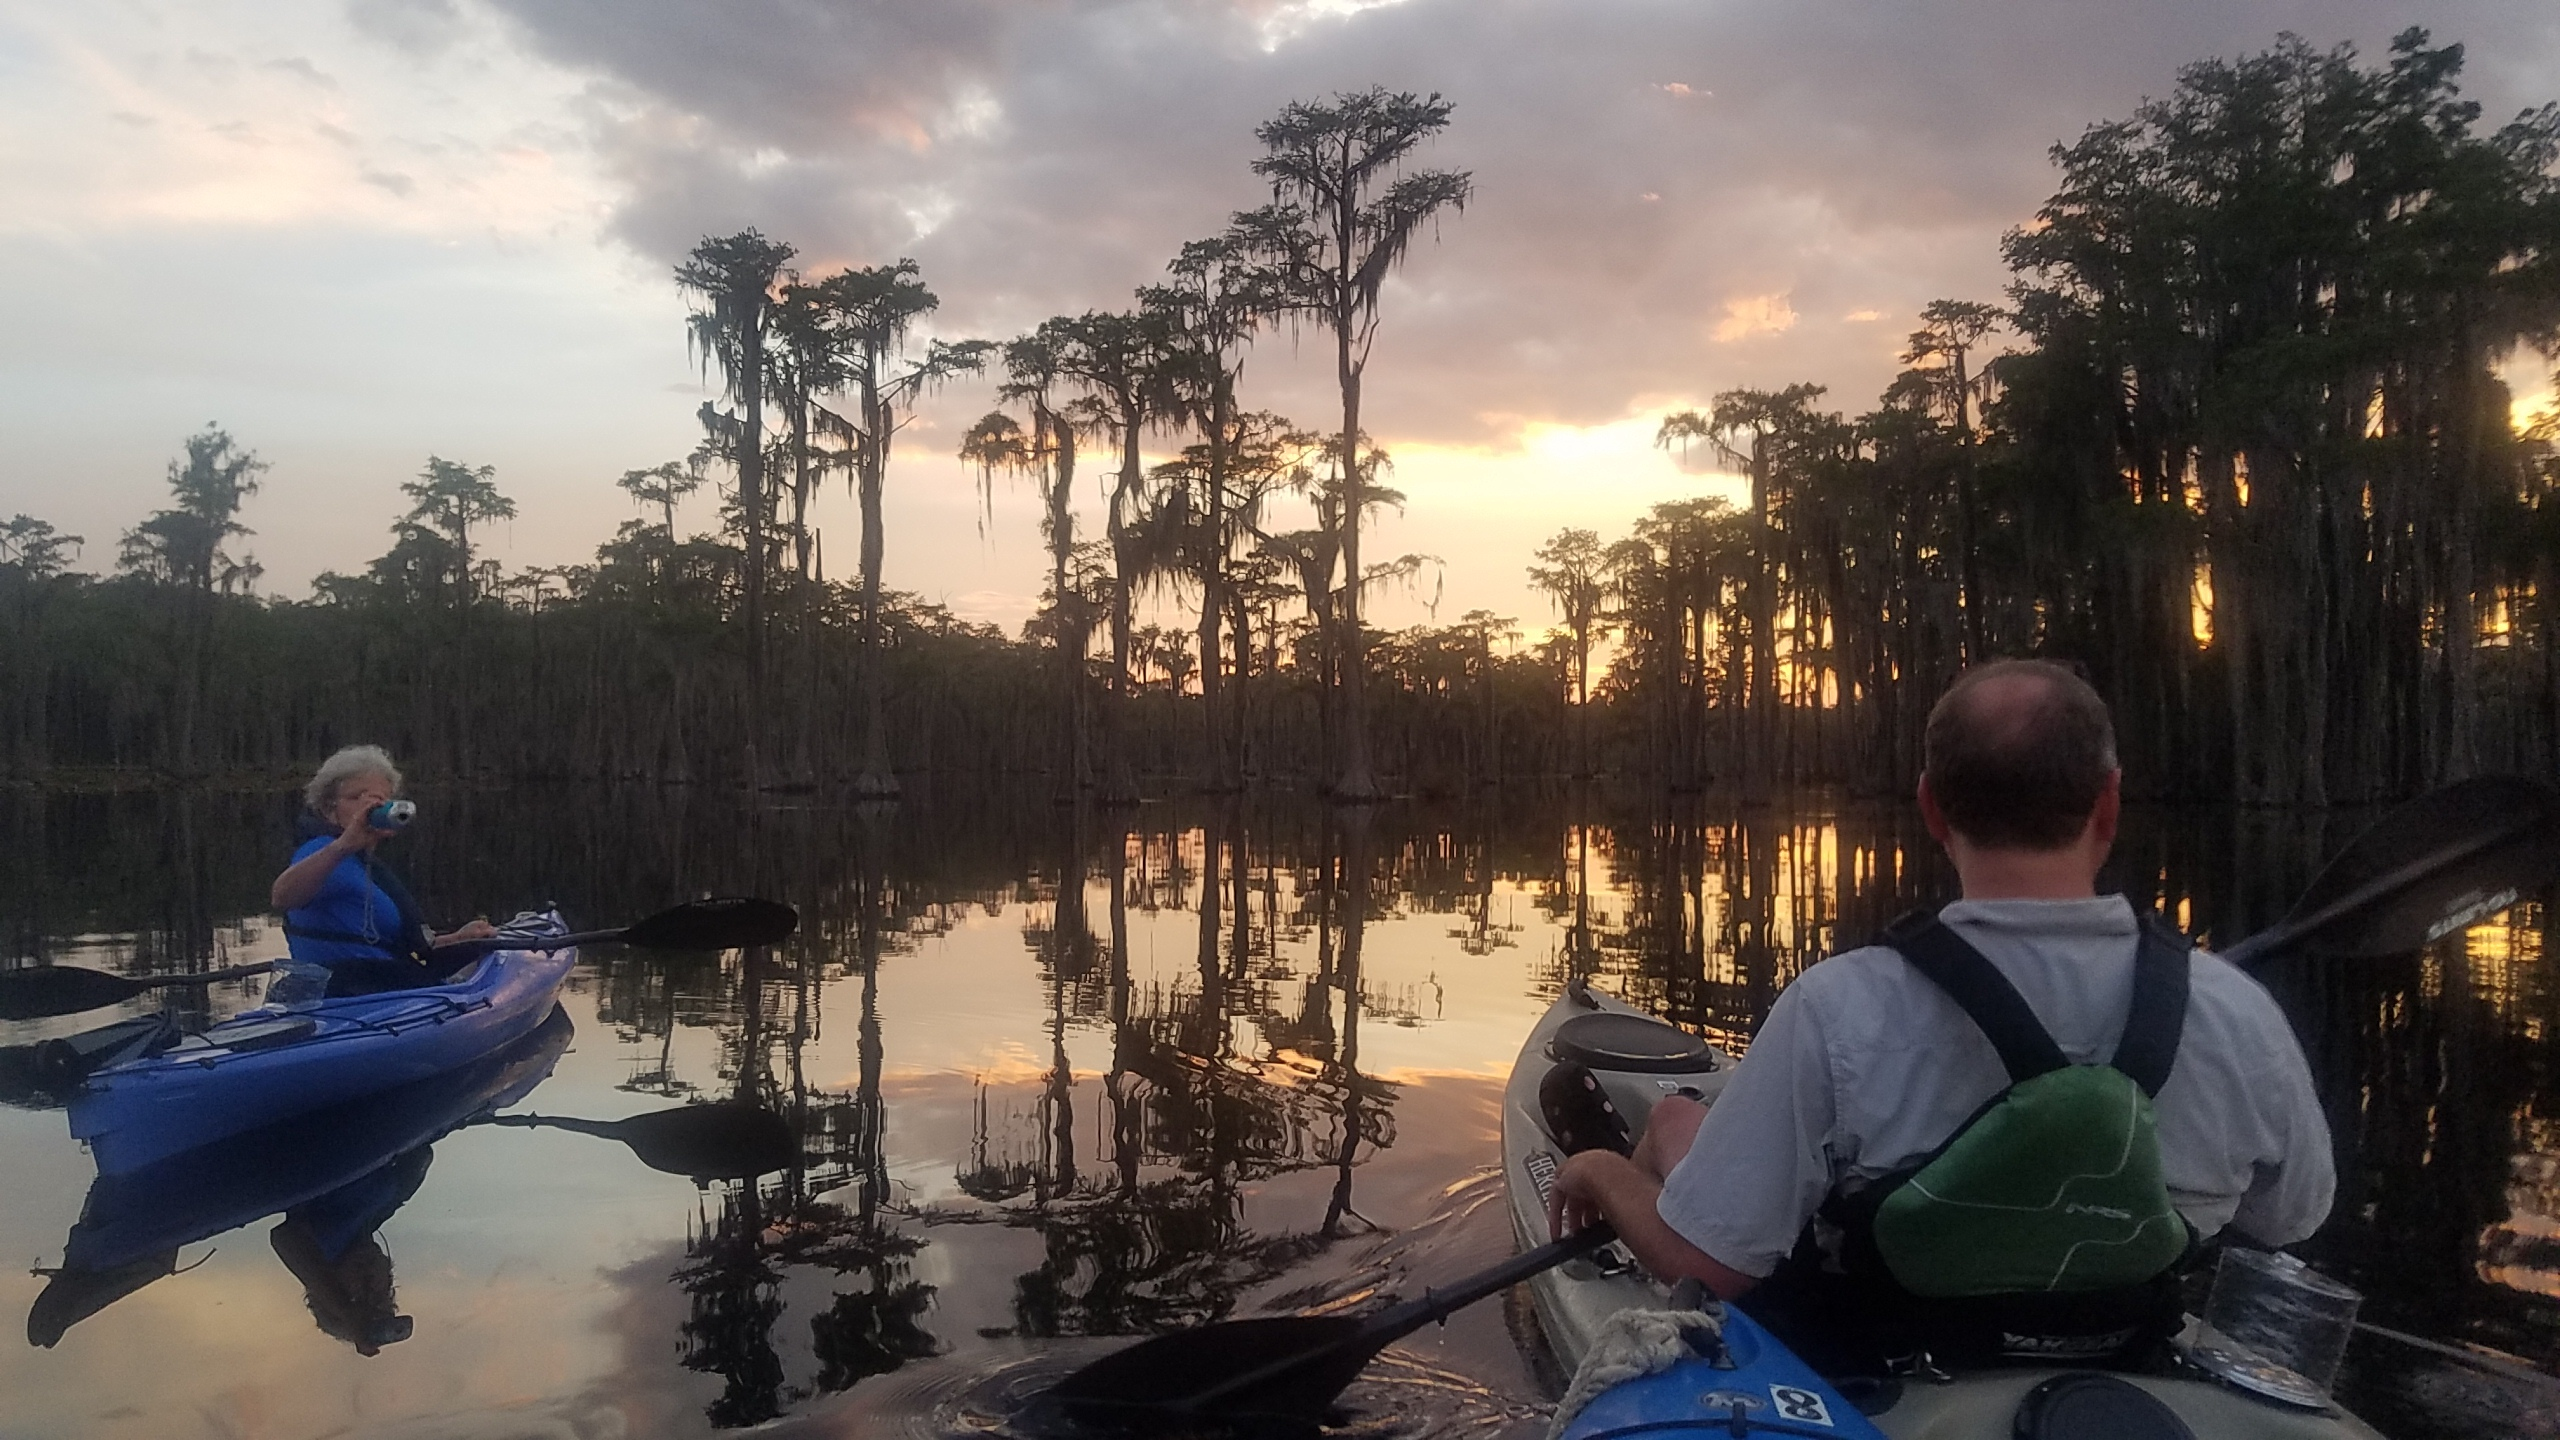 2560x1440 Shirley Kokidko, On the water, in Banks Lake Sunset Paddle, by John S. Quarterman, for WWALS.net, 27 July 2018